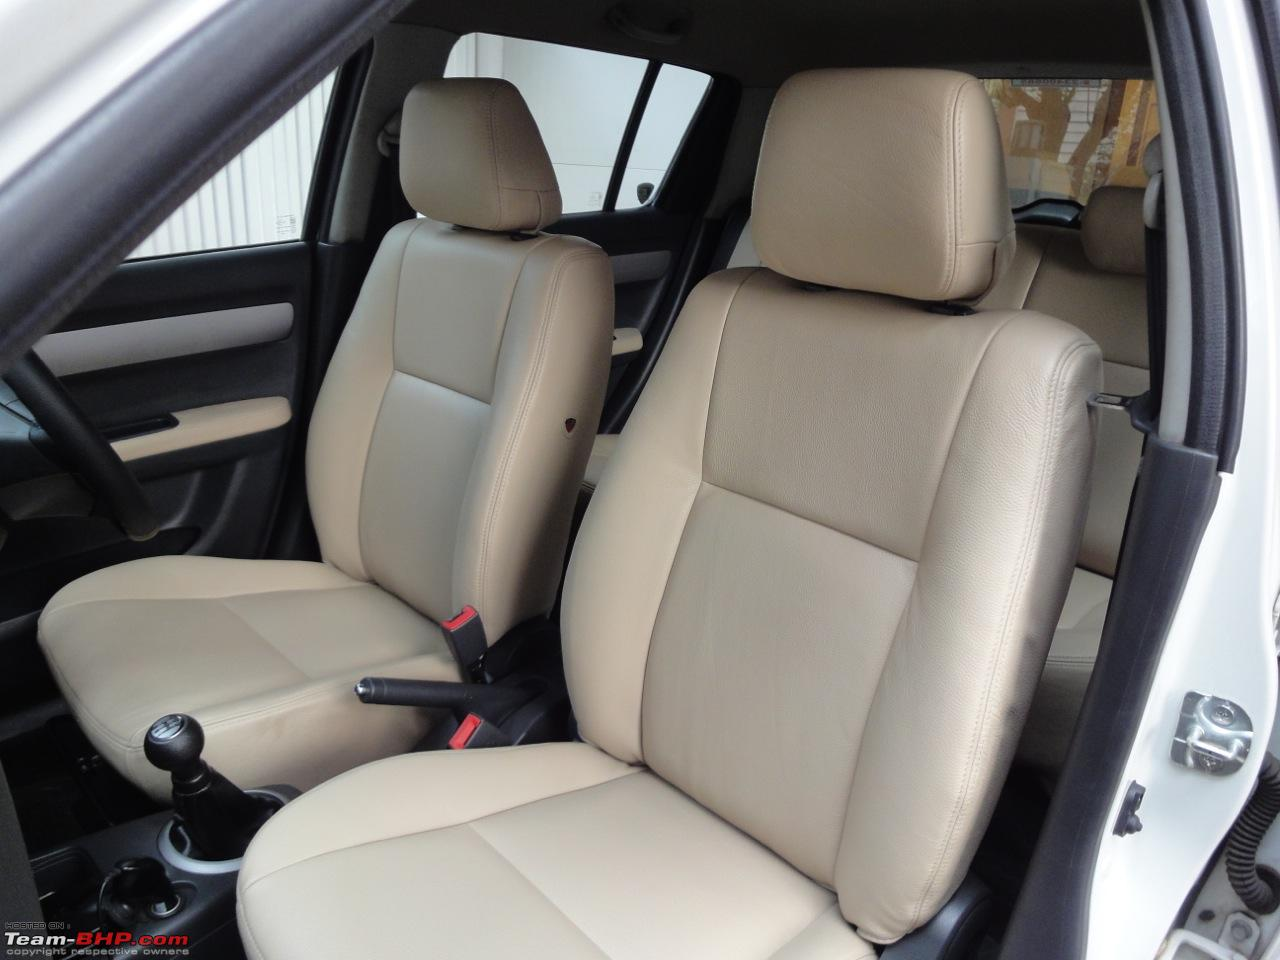 Leather Car upholstery - Karlsson (Bangalore) - Page 6 - Team-BHP